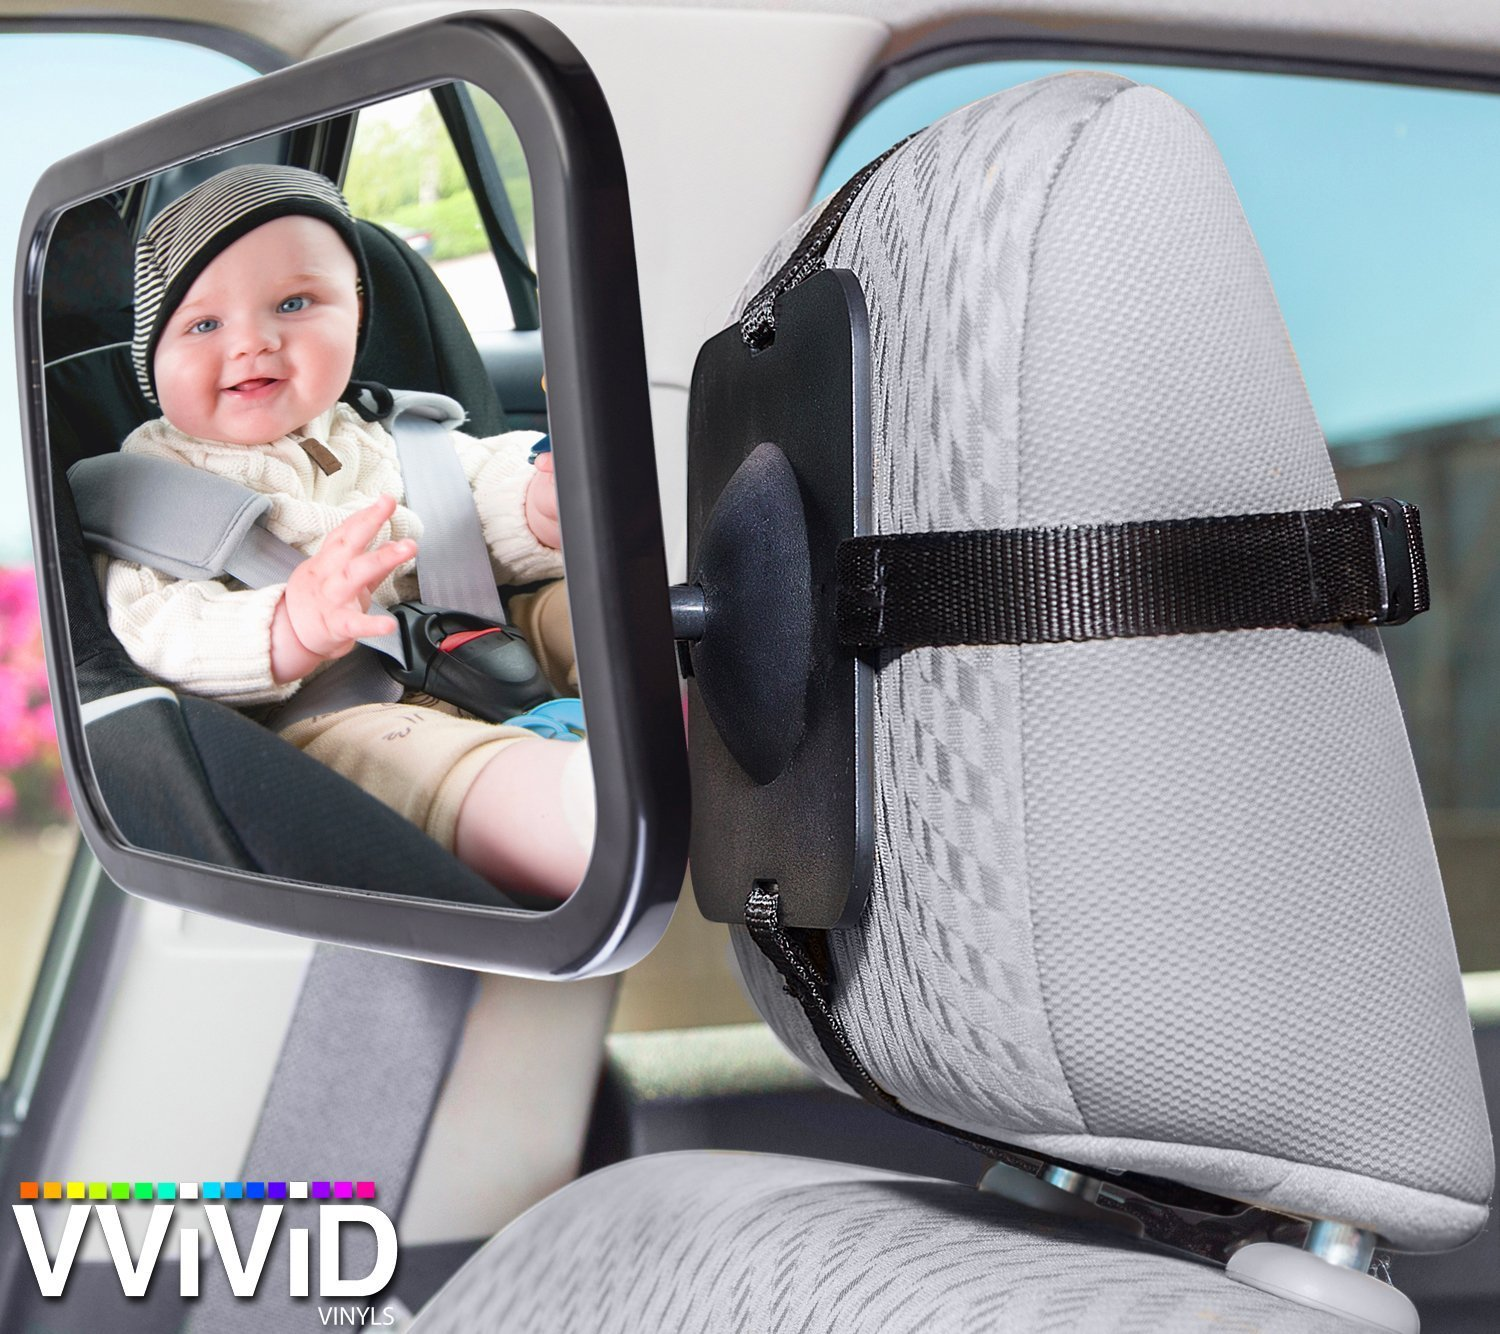 VViViD Adjustable Headrest Mounted Rear View Backseat Baby Safety Mirror